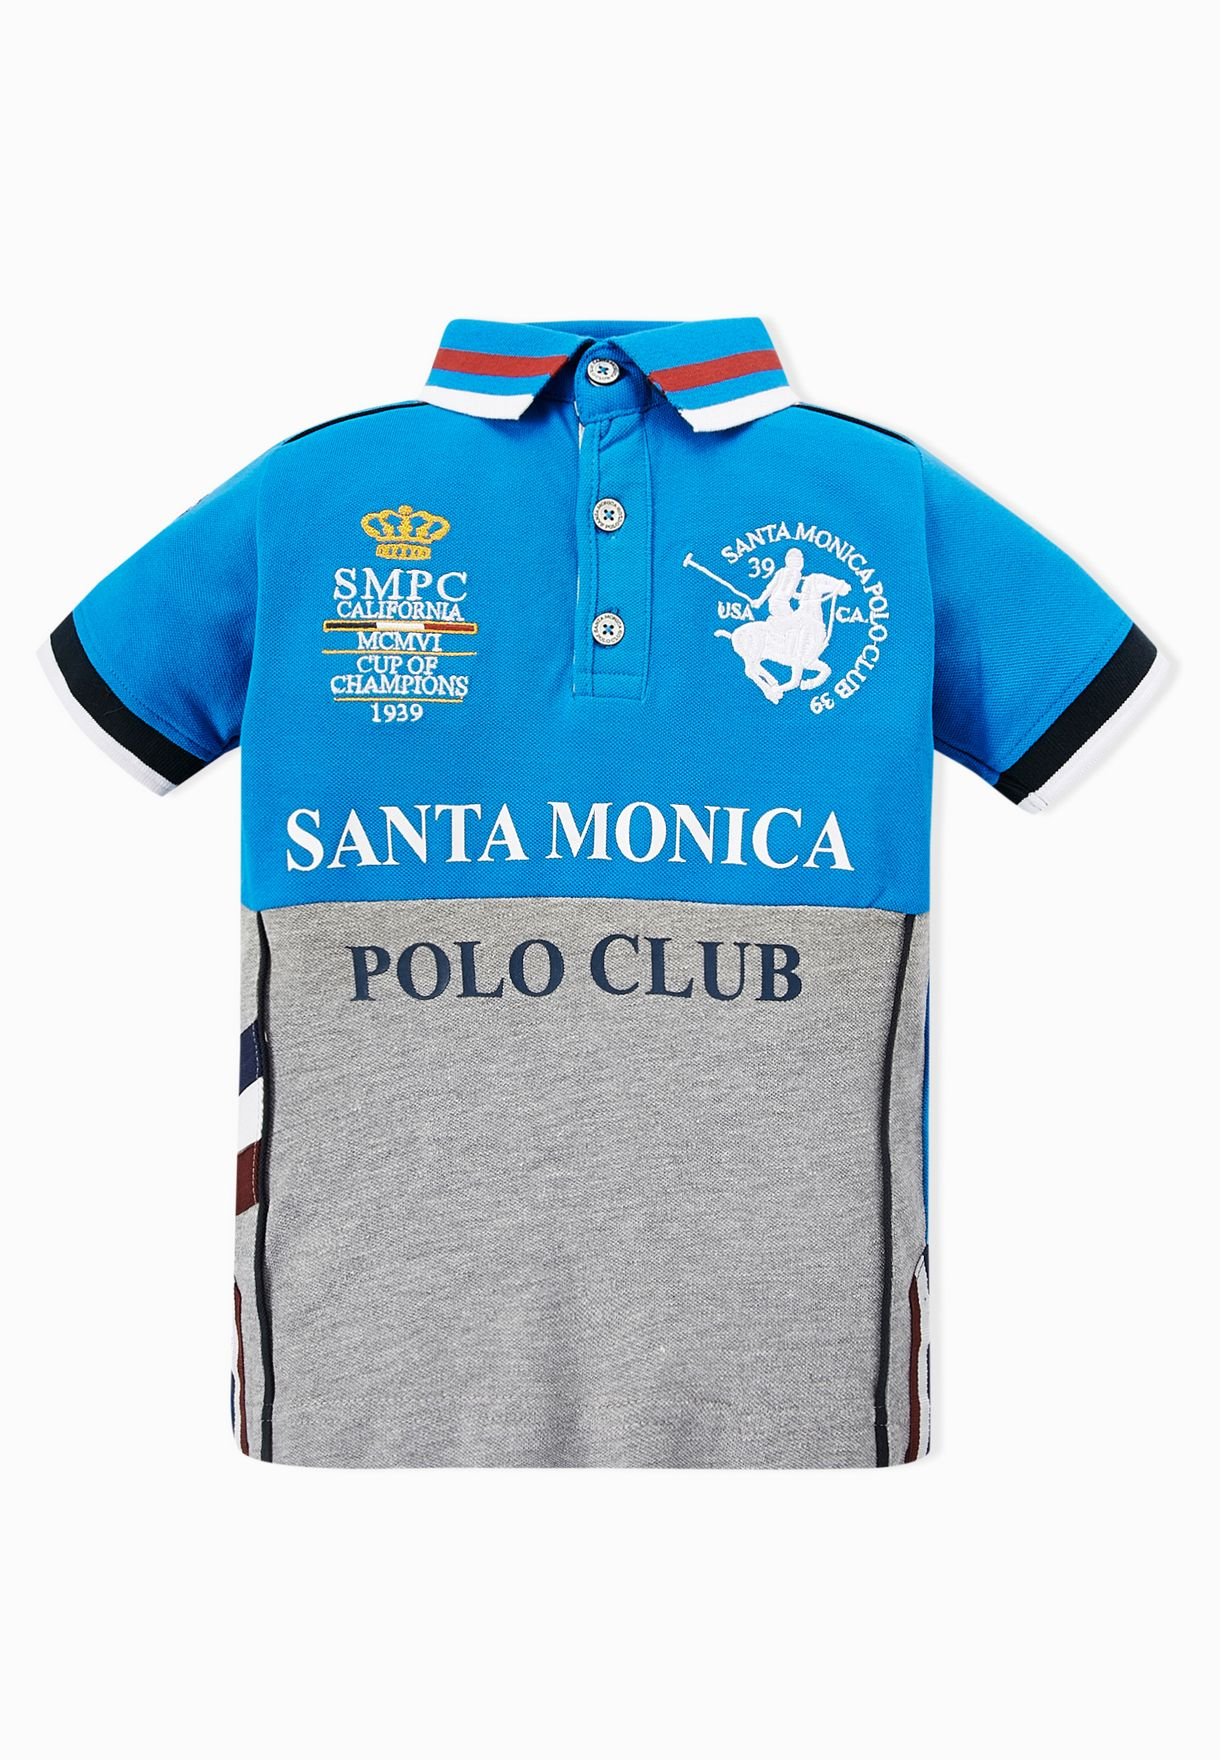 4d45e8b2 Shop Santa monica polo club multicolor Kids Bingham Polo Shirt for ...